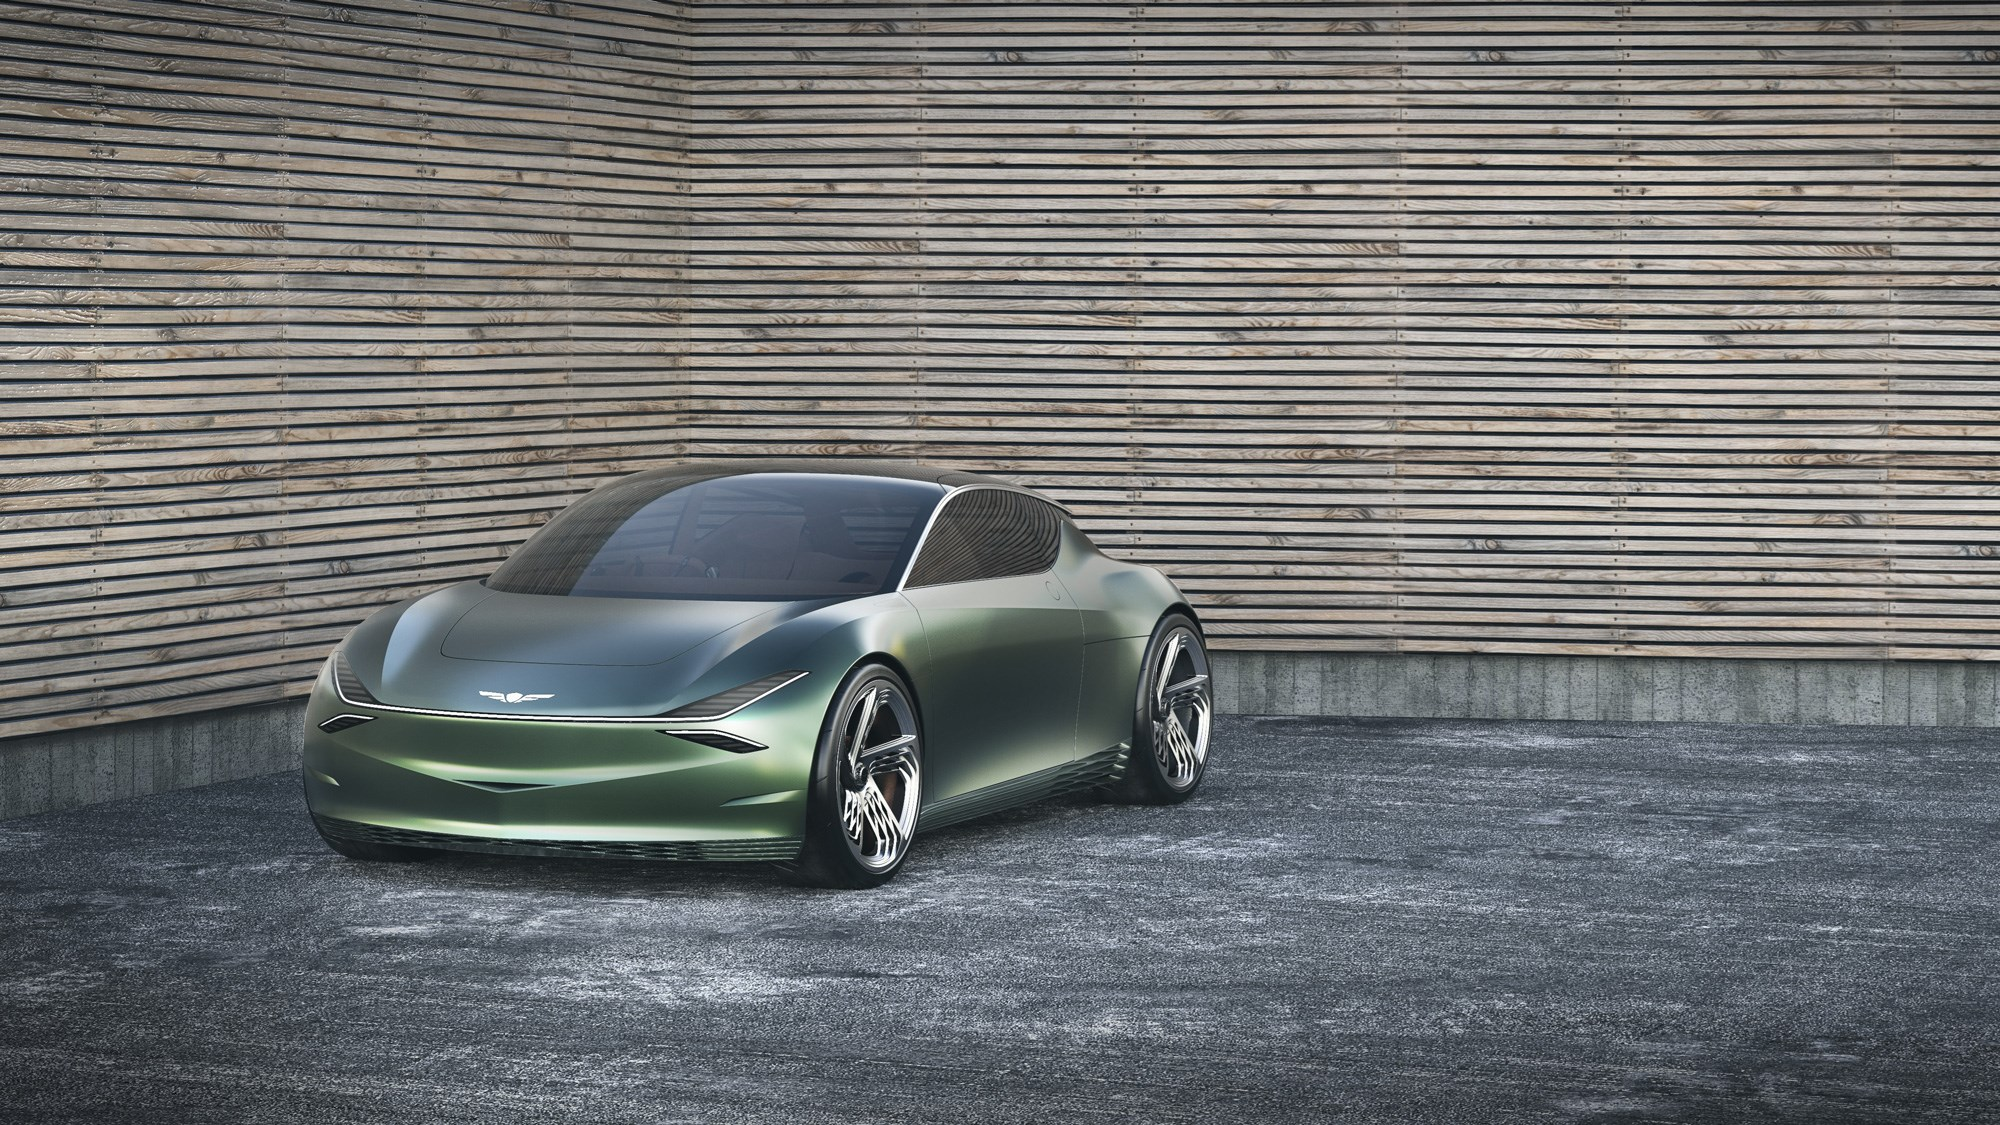 Minty Fresh: Genesis Unveils Exciting City Car Concept for Two